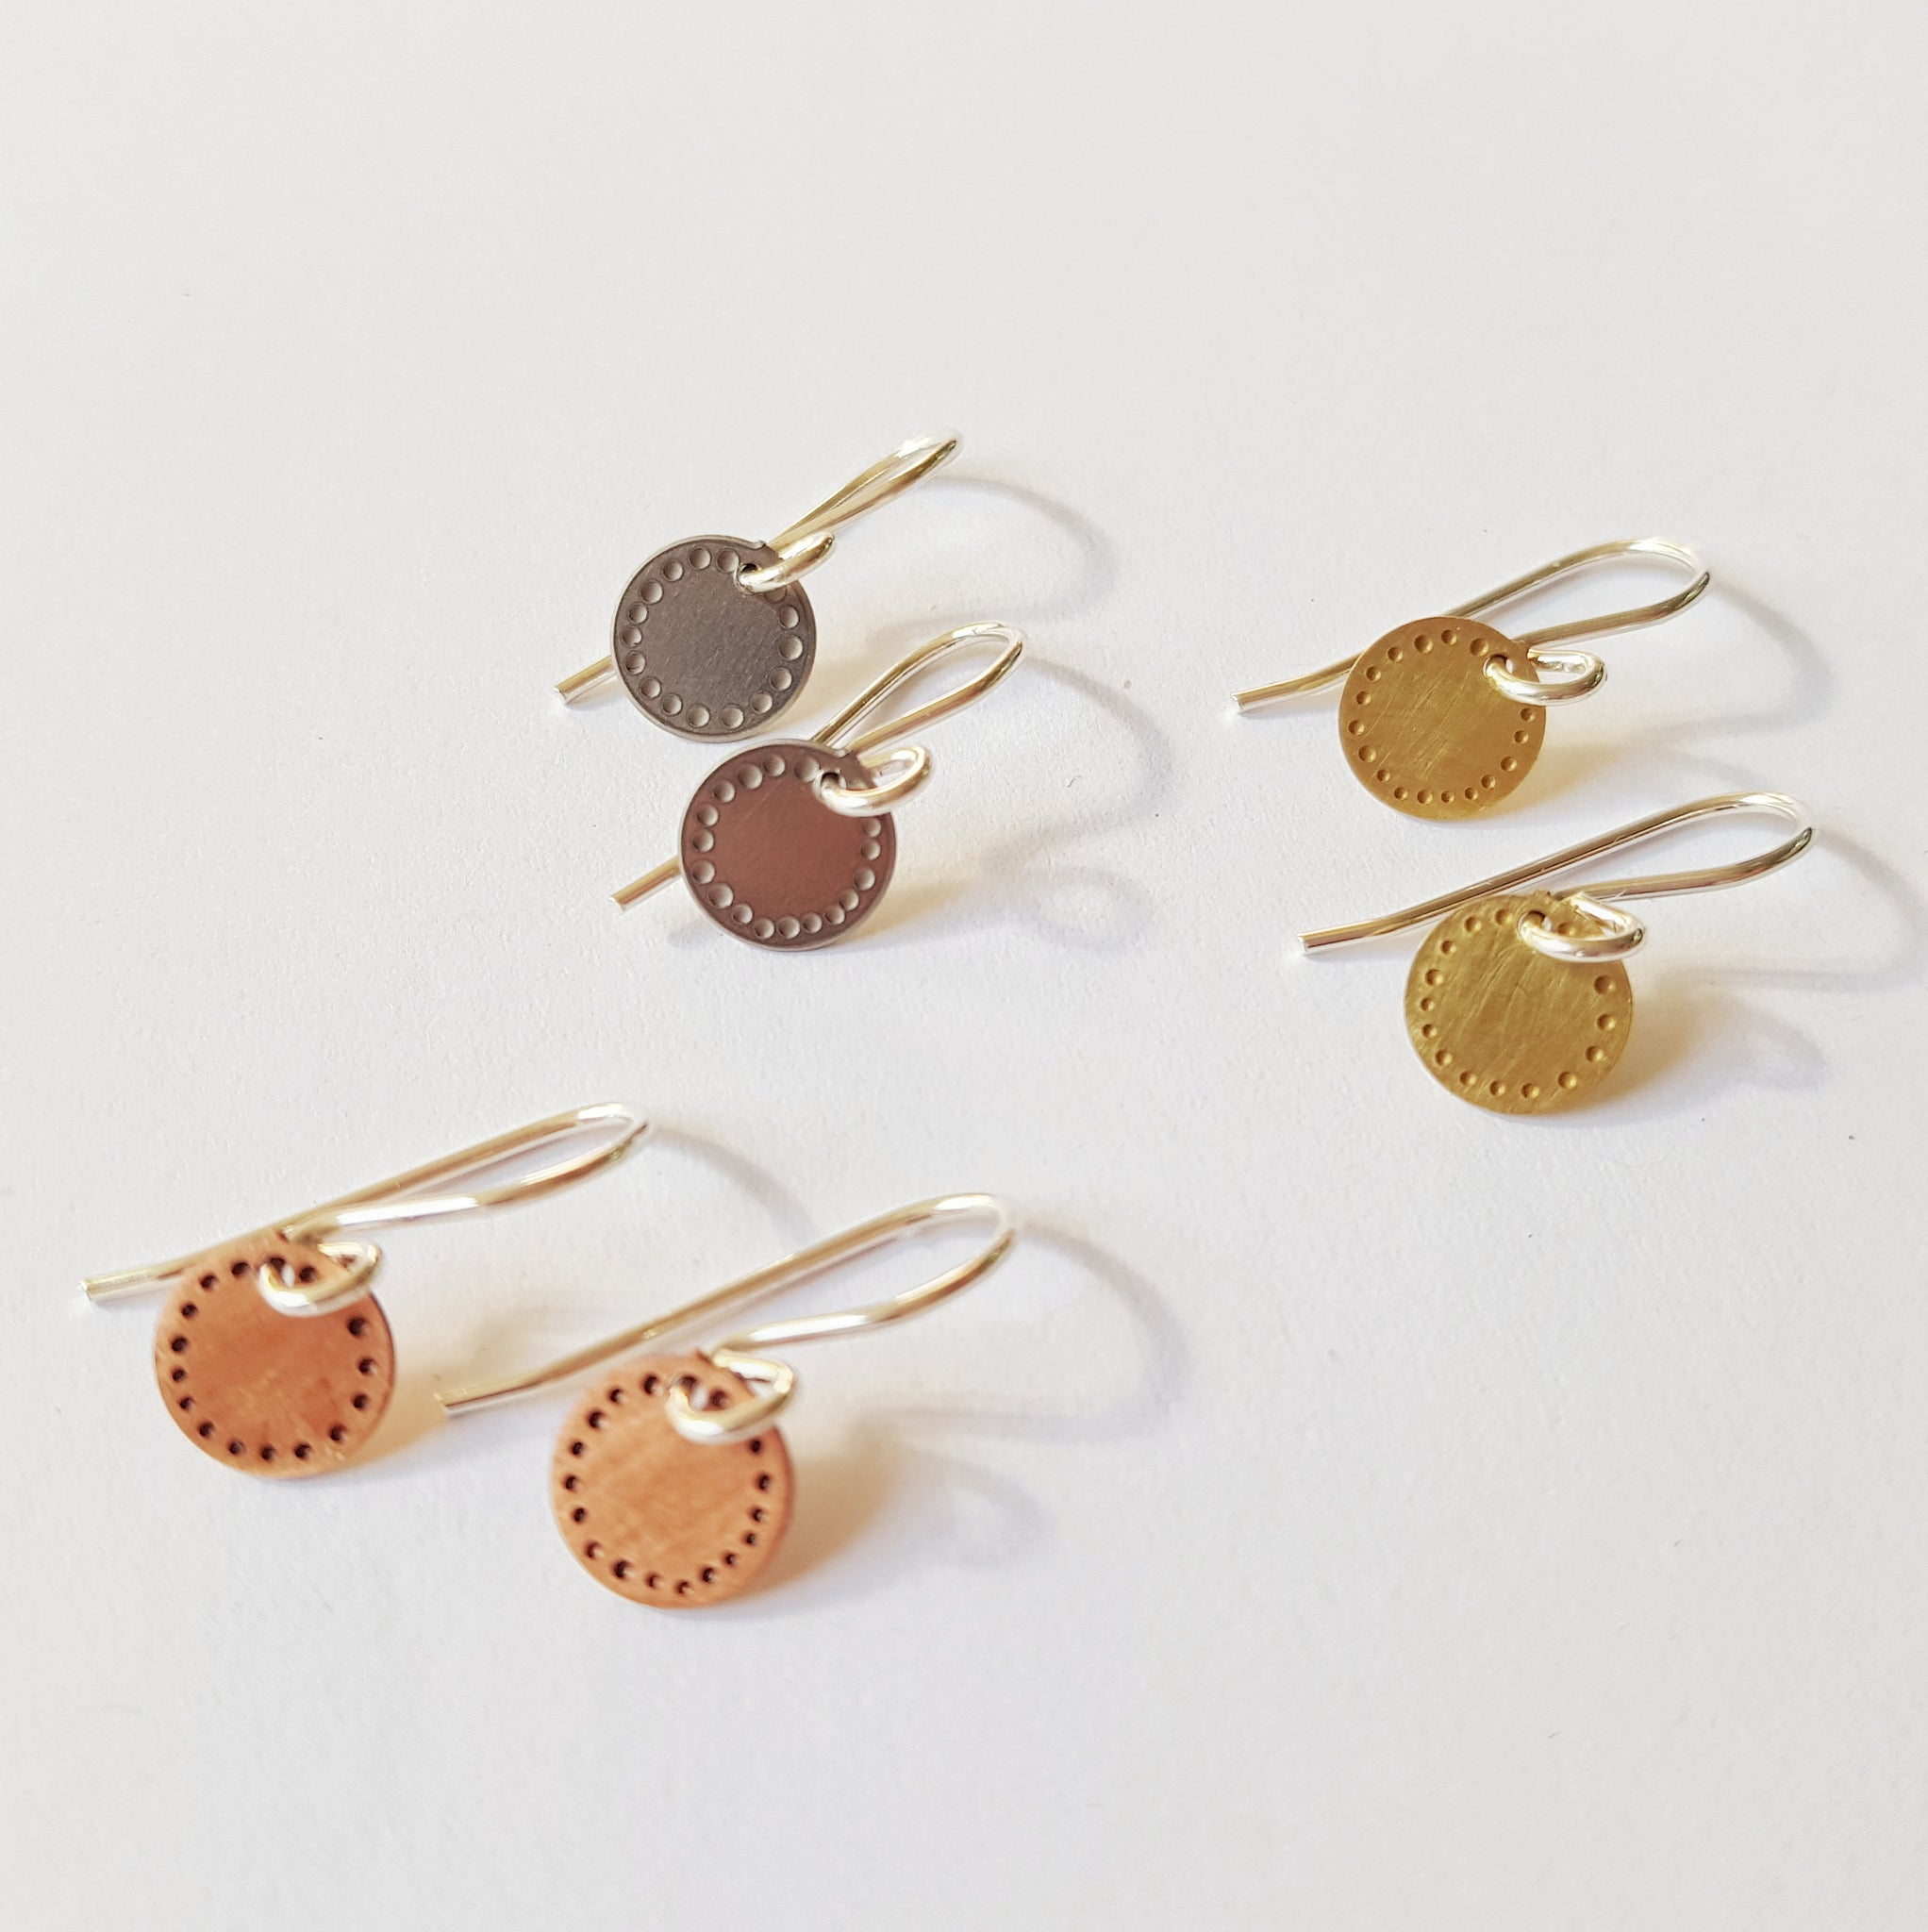 Blossom earrings x Jessica Jubb